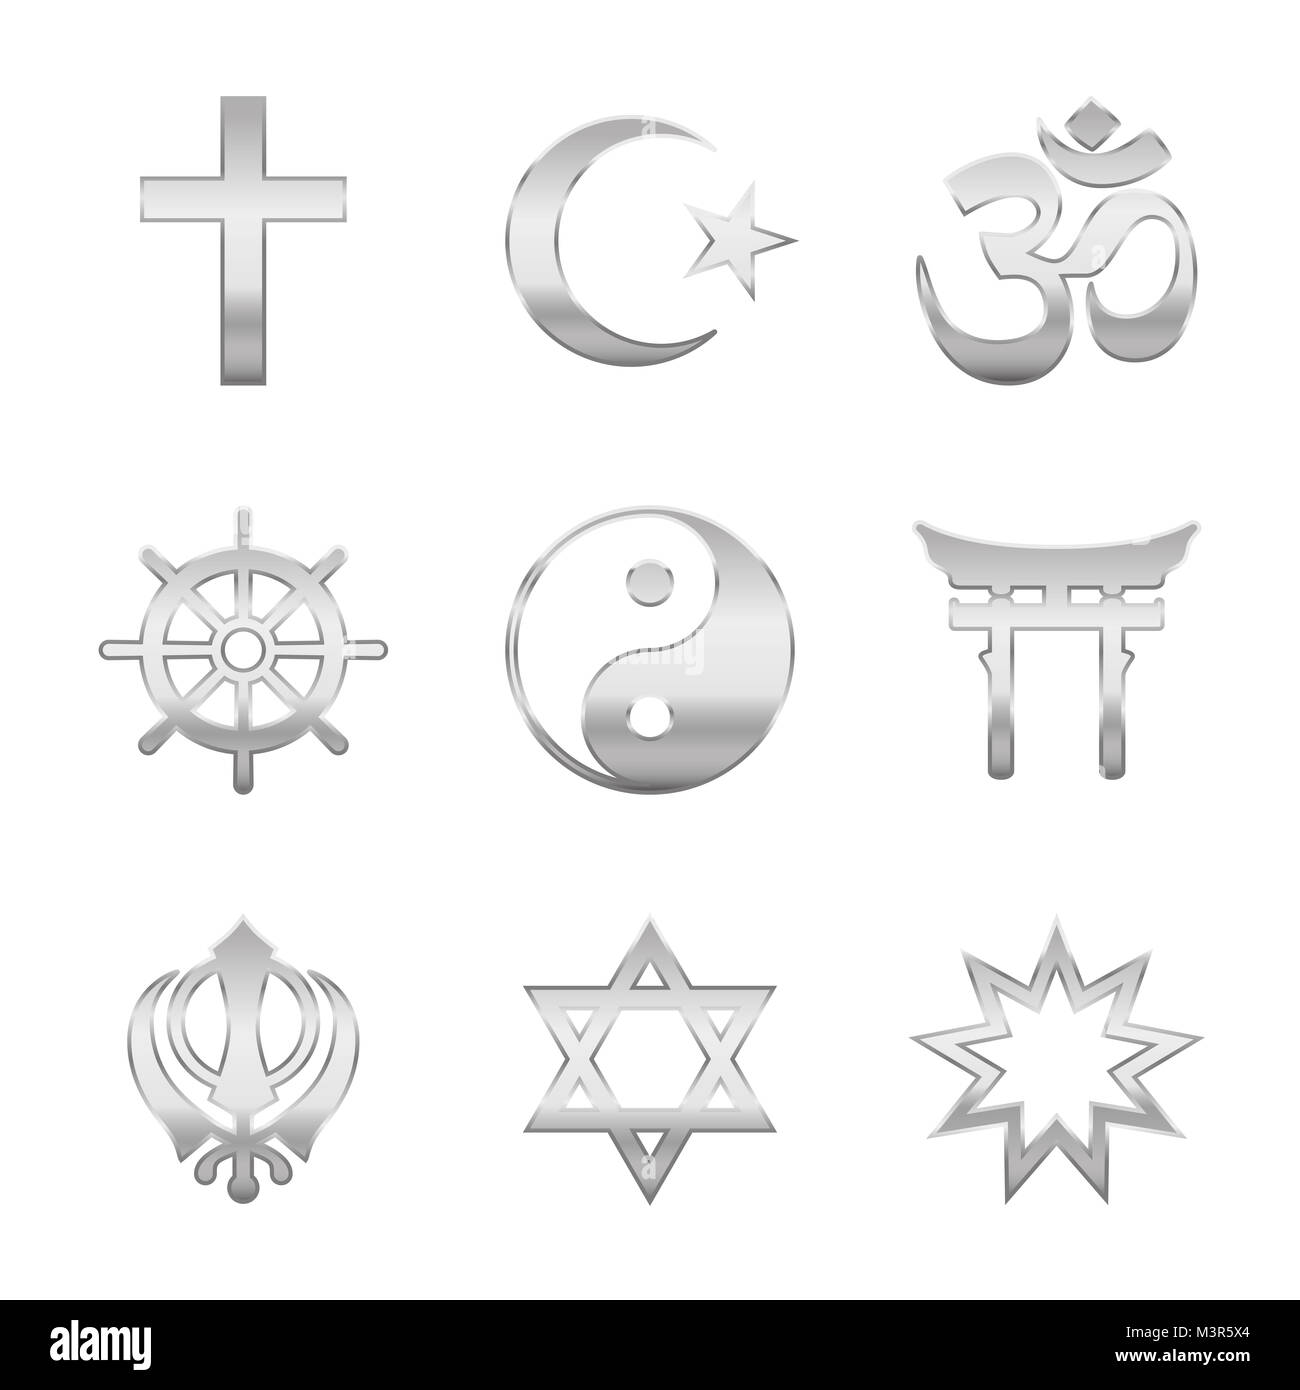 Religion symbols cut out stock images pictures alamy religion symbols silver signs major world religious groups and religions christianity islam biocorpaavc Gallery